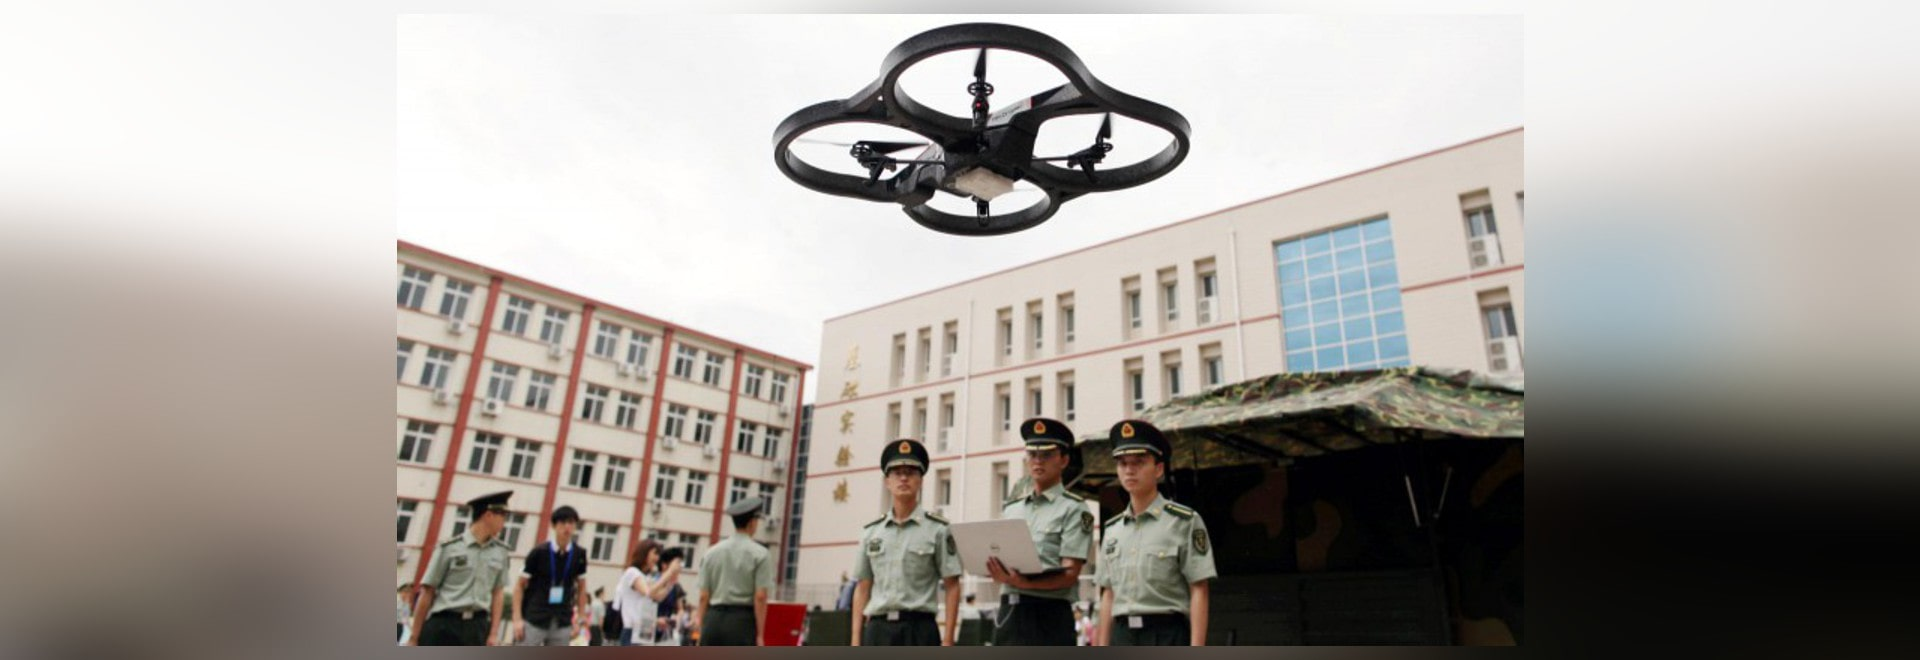 CHINESE REPORT DEVELOPMENT OF ANTI-DRONE LASER CANNON